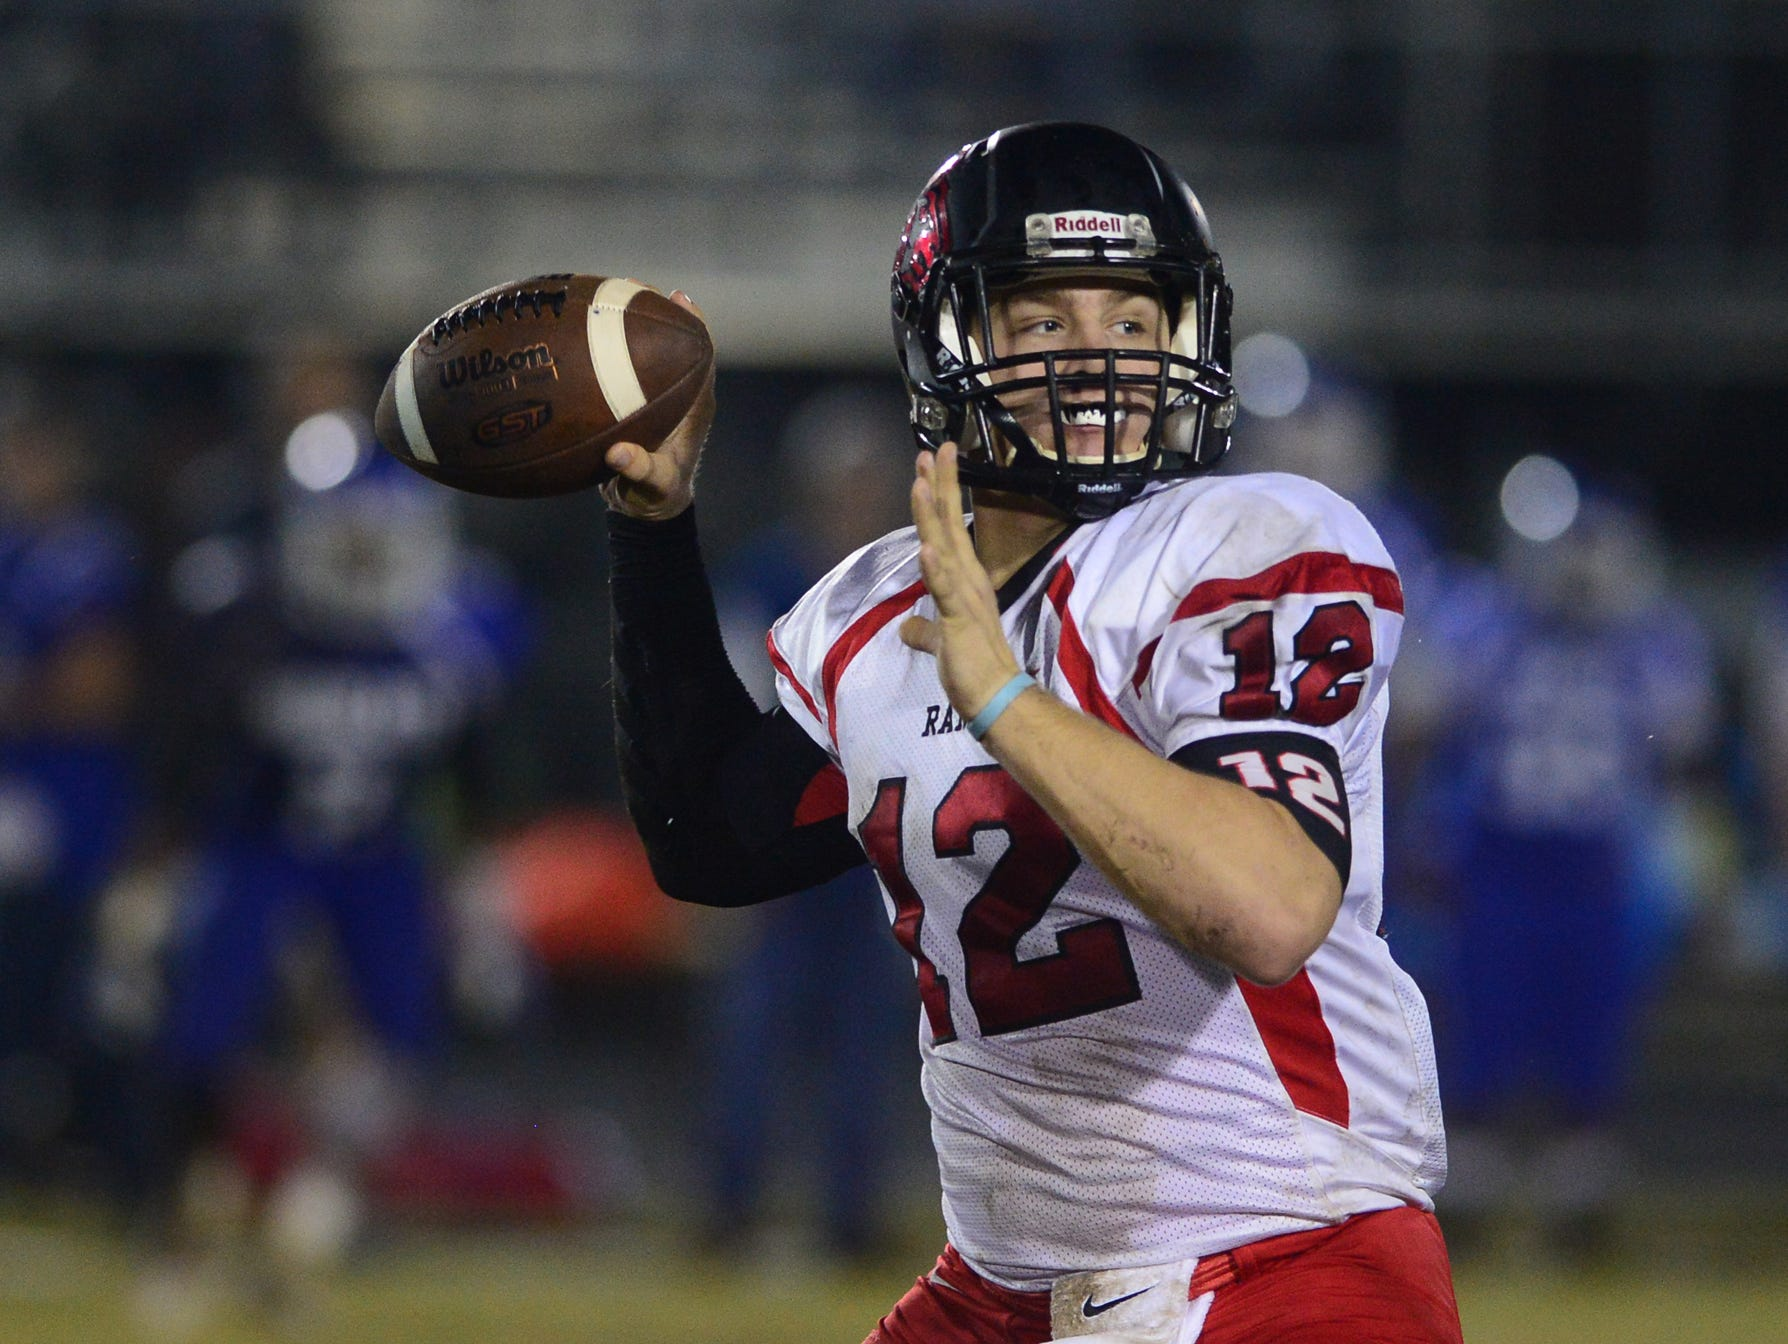 Hillcrest High quarterback Collin Sneed (12) looks to make a pass during a game against Woodmont High School on Friday.